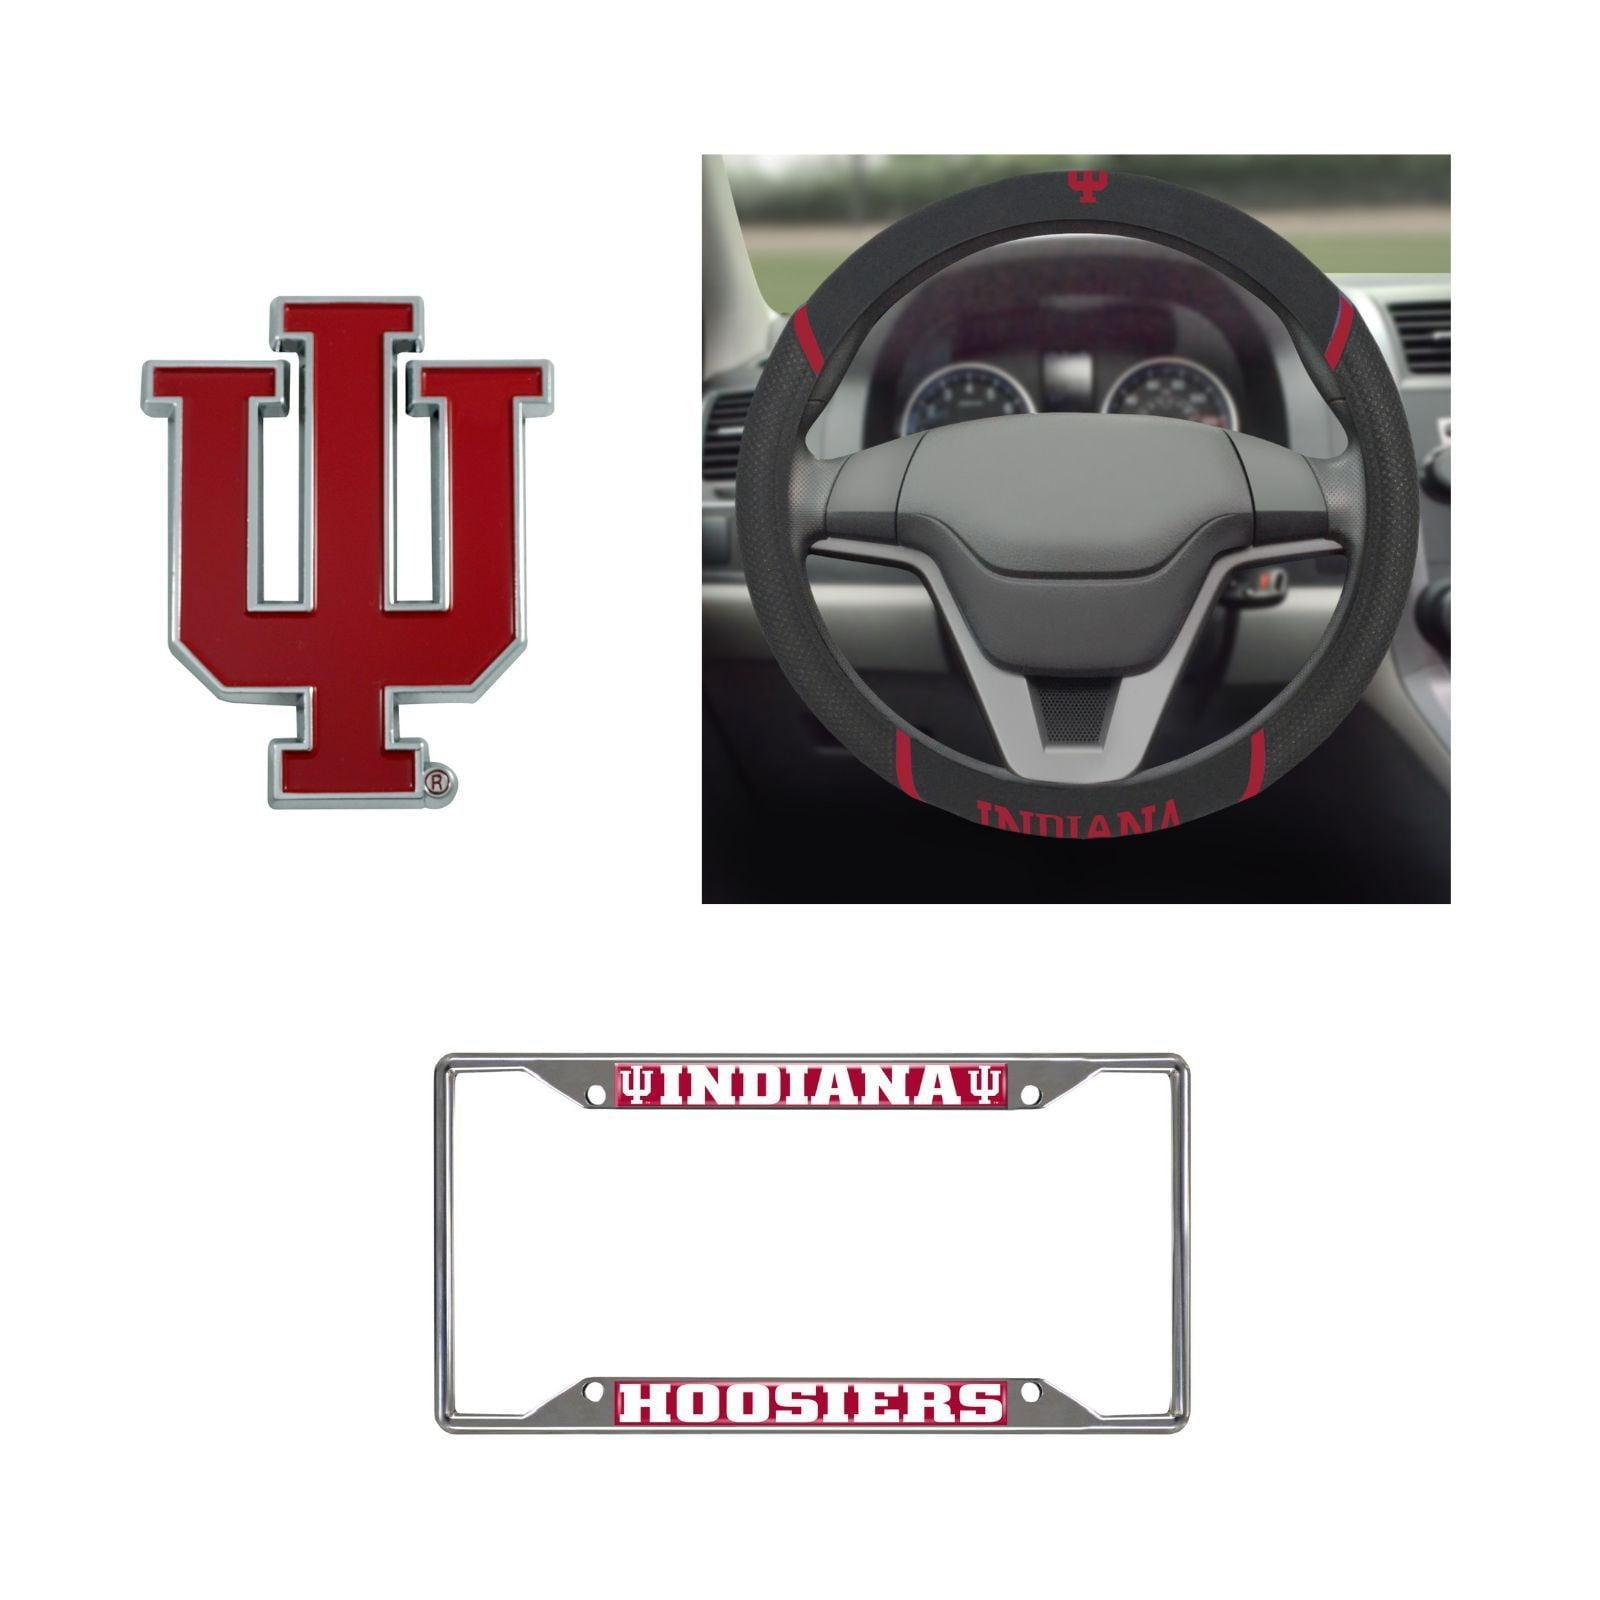 Indiana Hoosiers Steering Wheel Cover, License Plate Frame, 3D Color Emblem